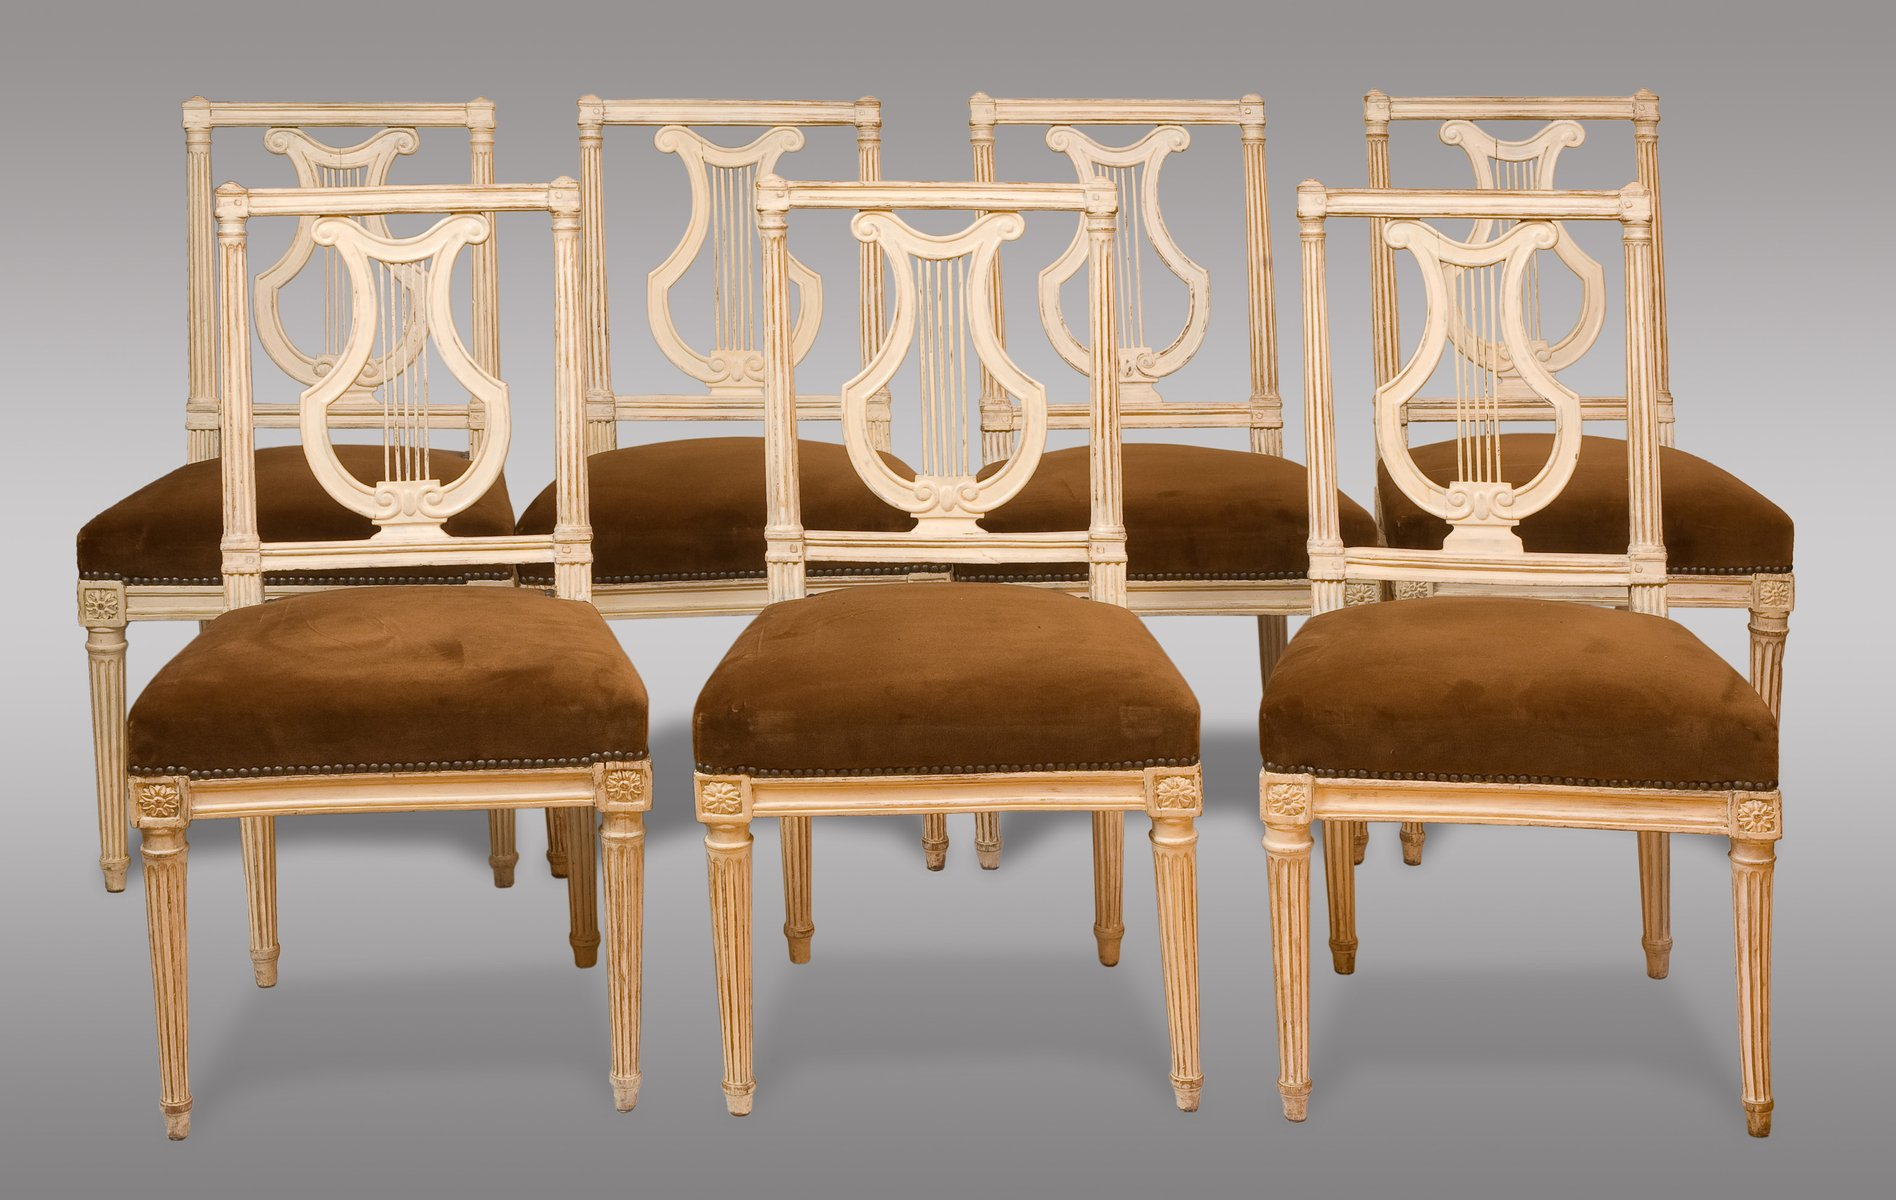 Antique Louis XVI Period Chairs, 1790, Set Of 8